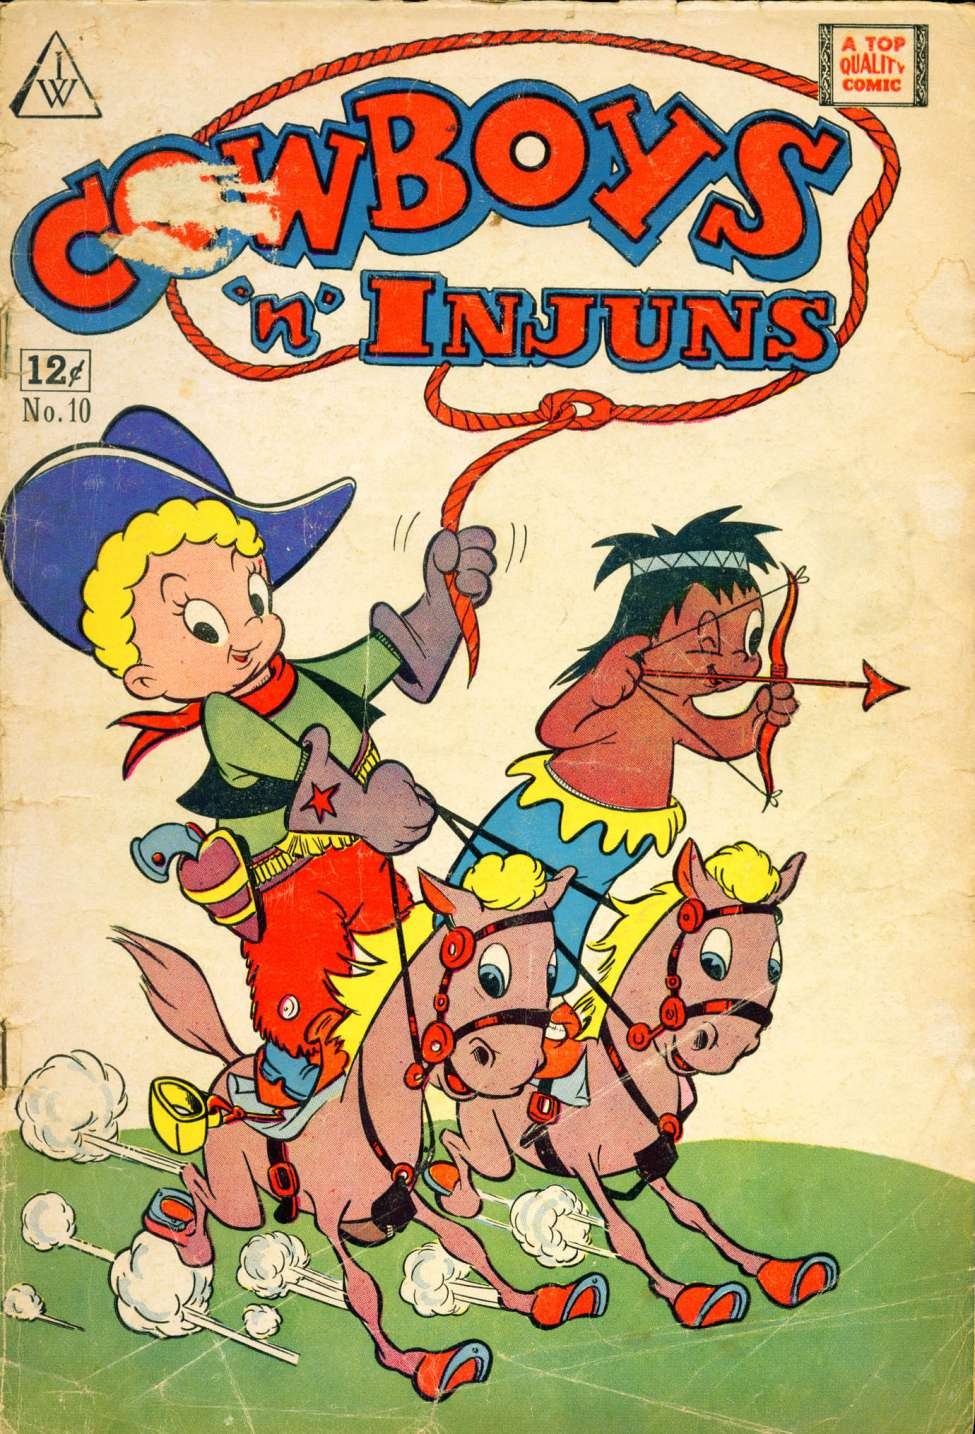 Comic Book Cover For Cowboys 'N' Injuns #10